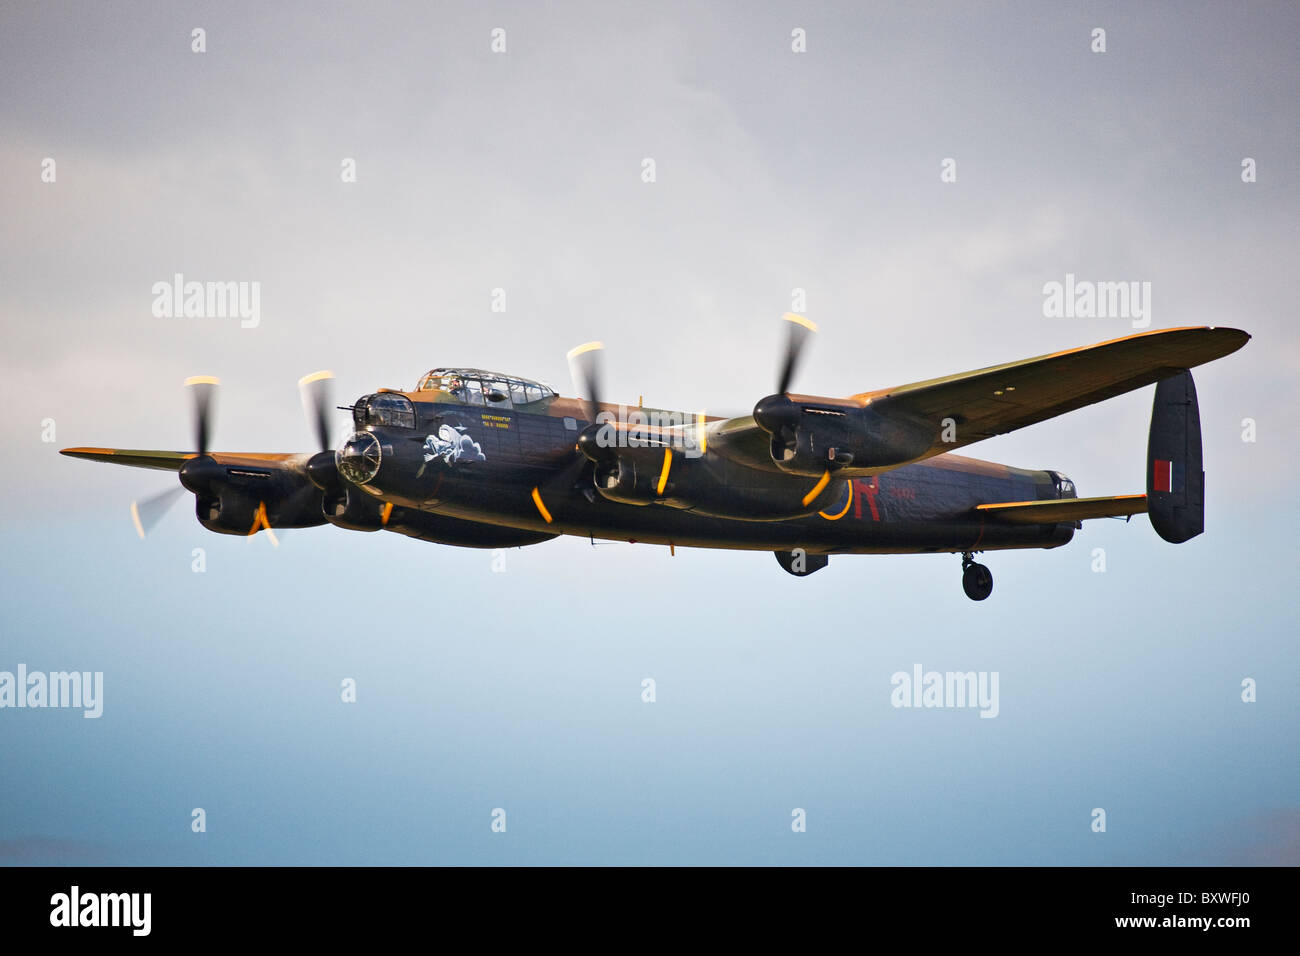 Avro Lancaster, memorial flight, Wings & Wheels display, Dunsfold 2010 - Stock Image